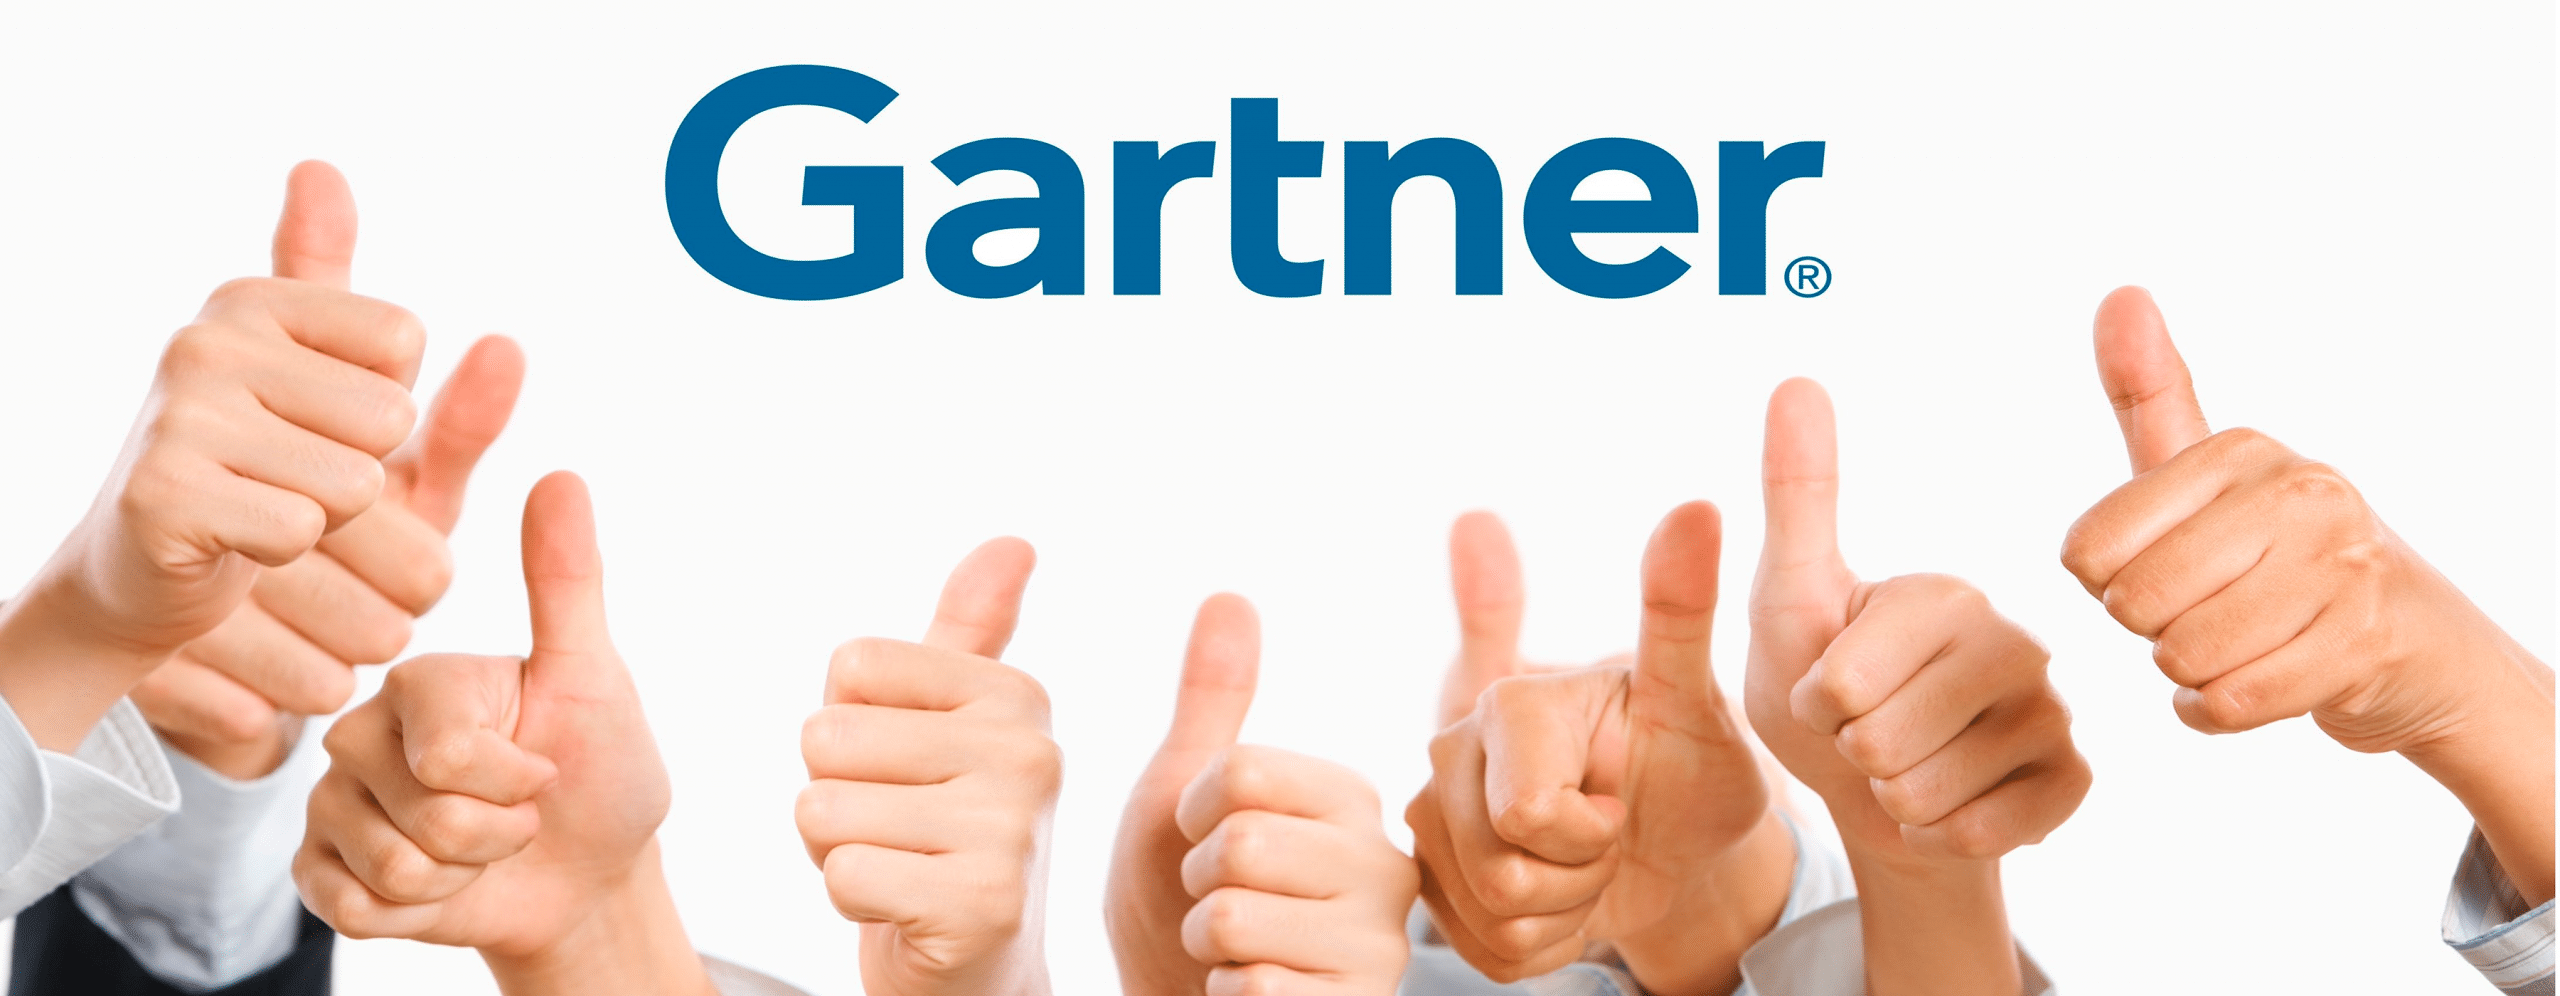 SISQUAL referred in Gartner's Market Guide for Workforce Management Applications for 5 years running